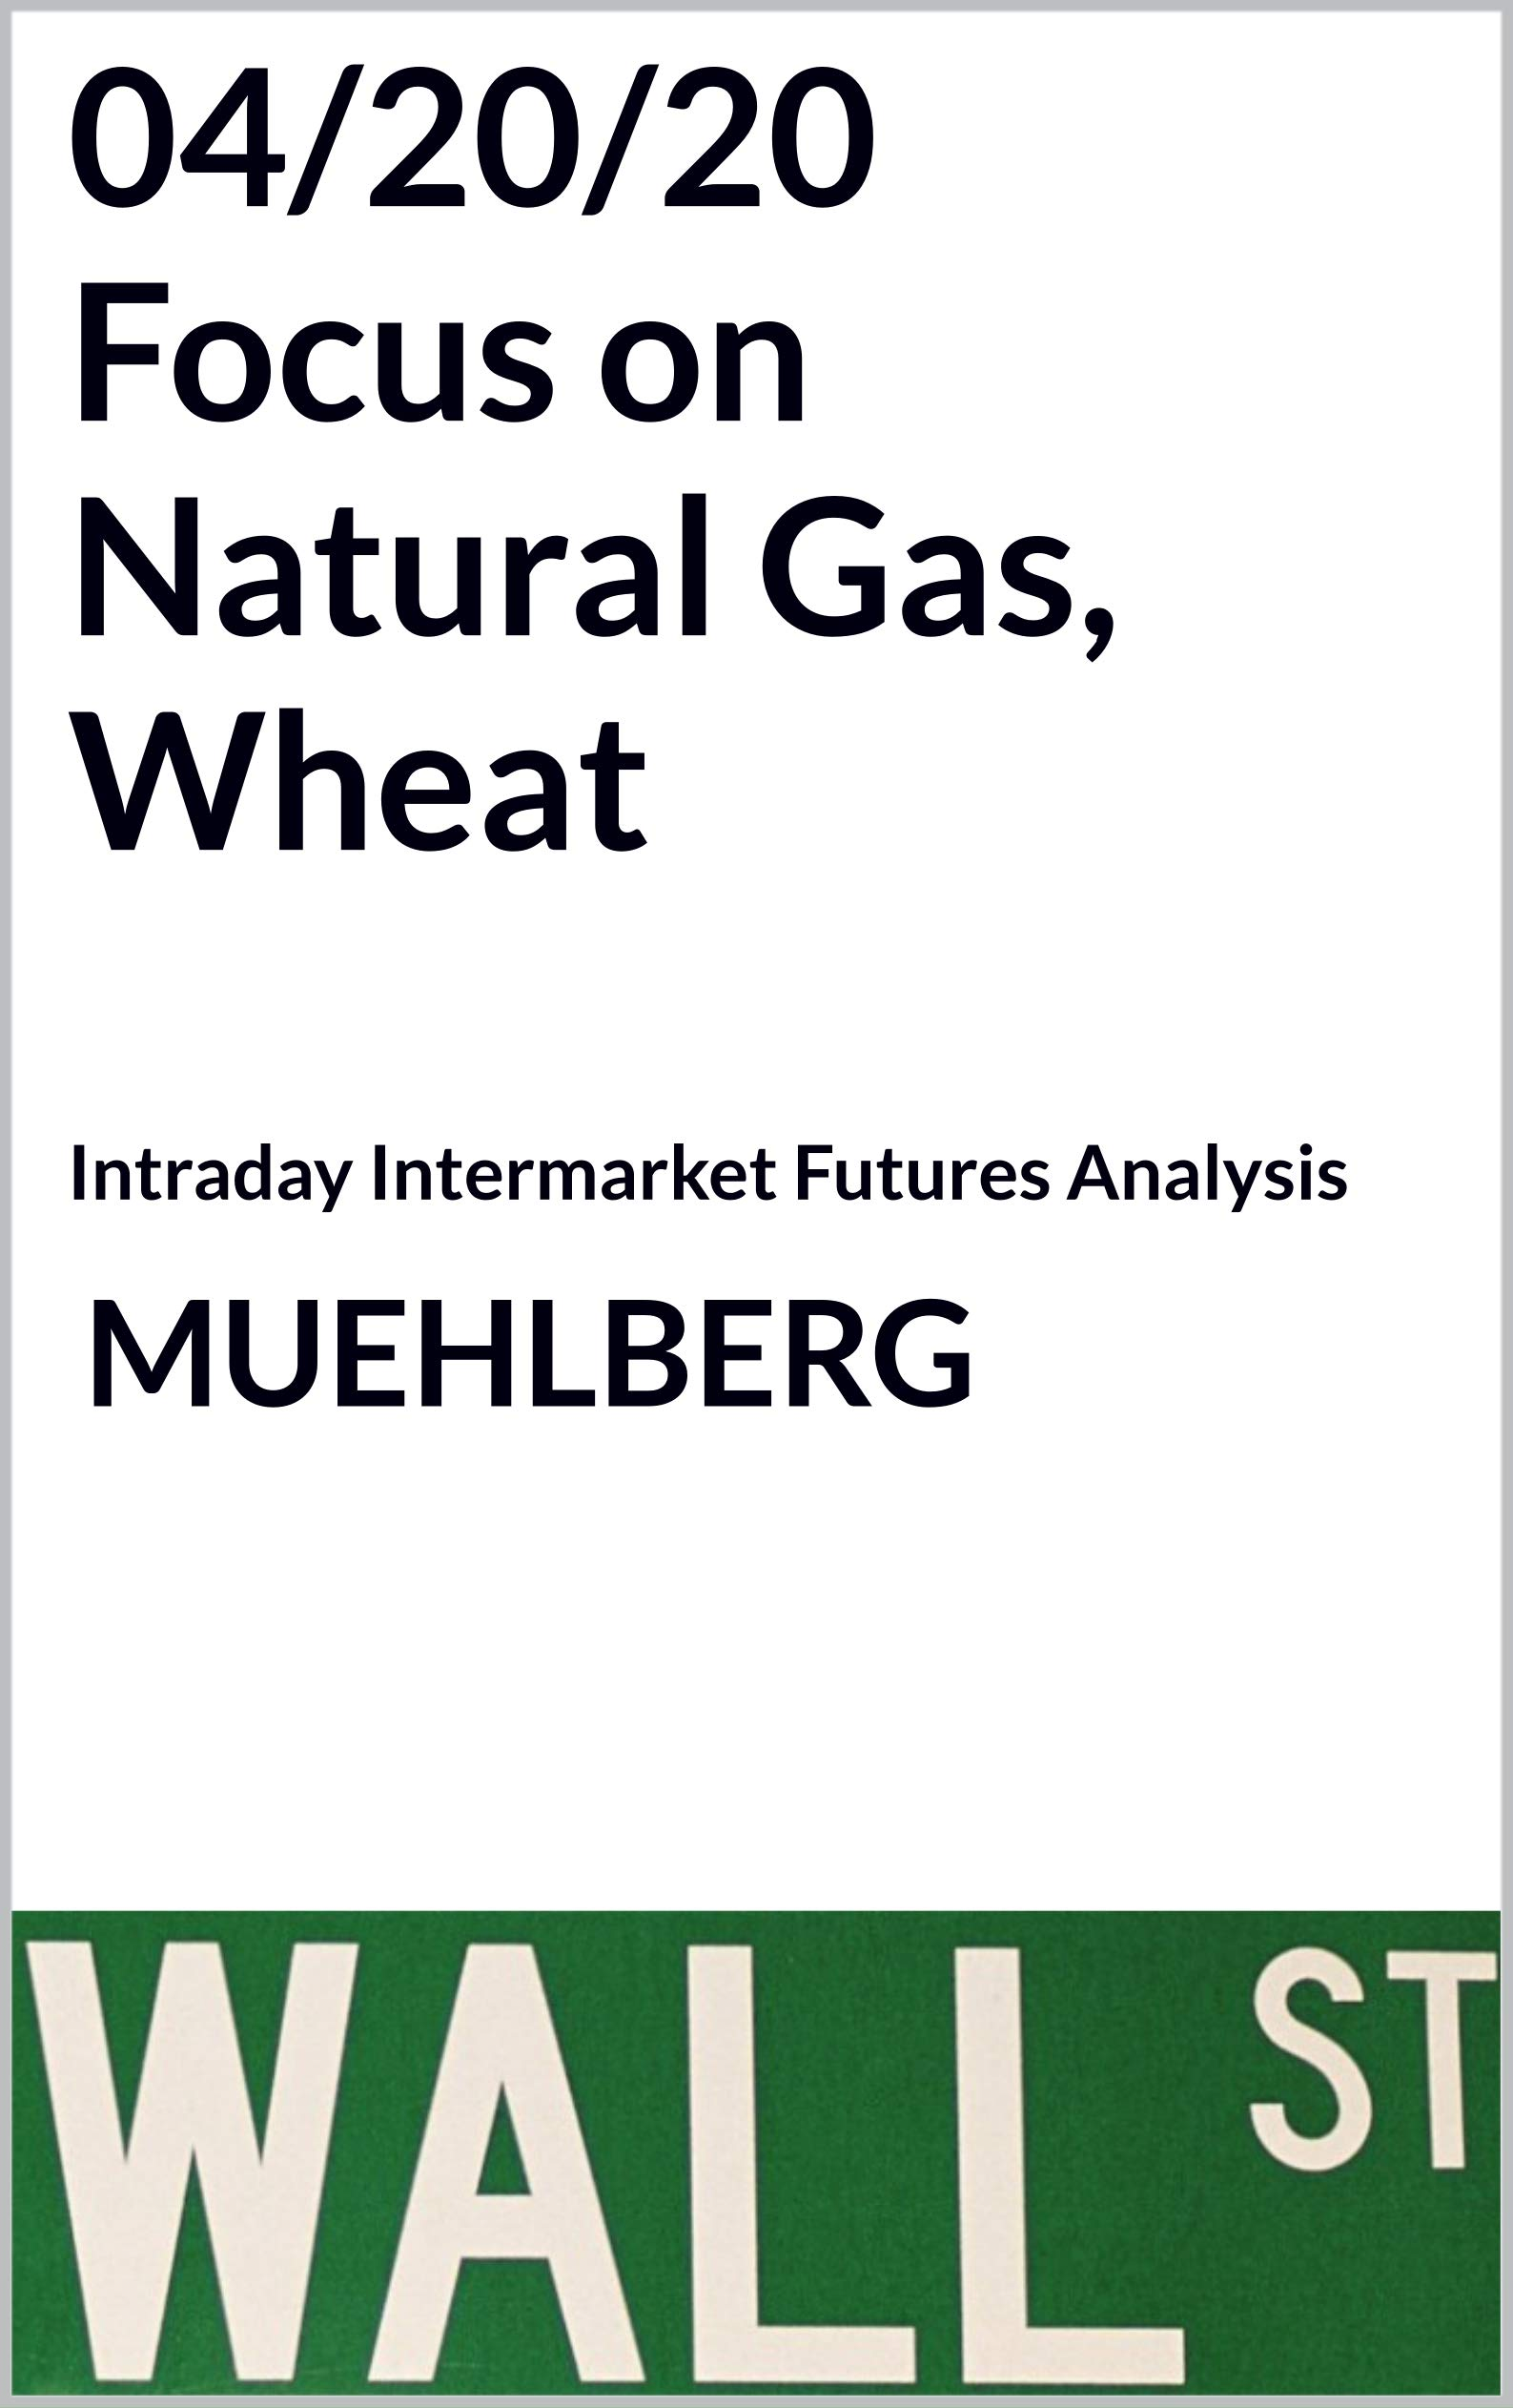 04/20/20 Focus on Natural Gas, Wheat: Intraday Intermarket Futures Analysis